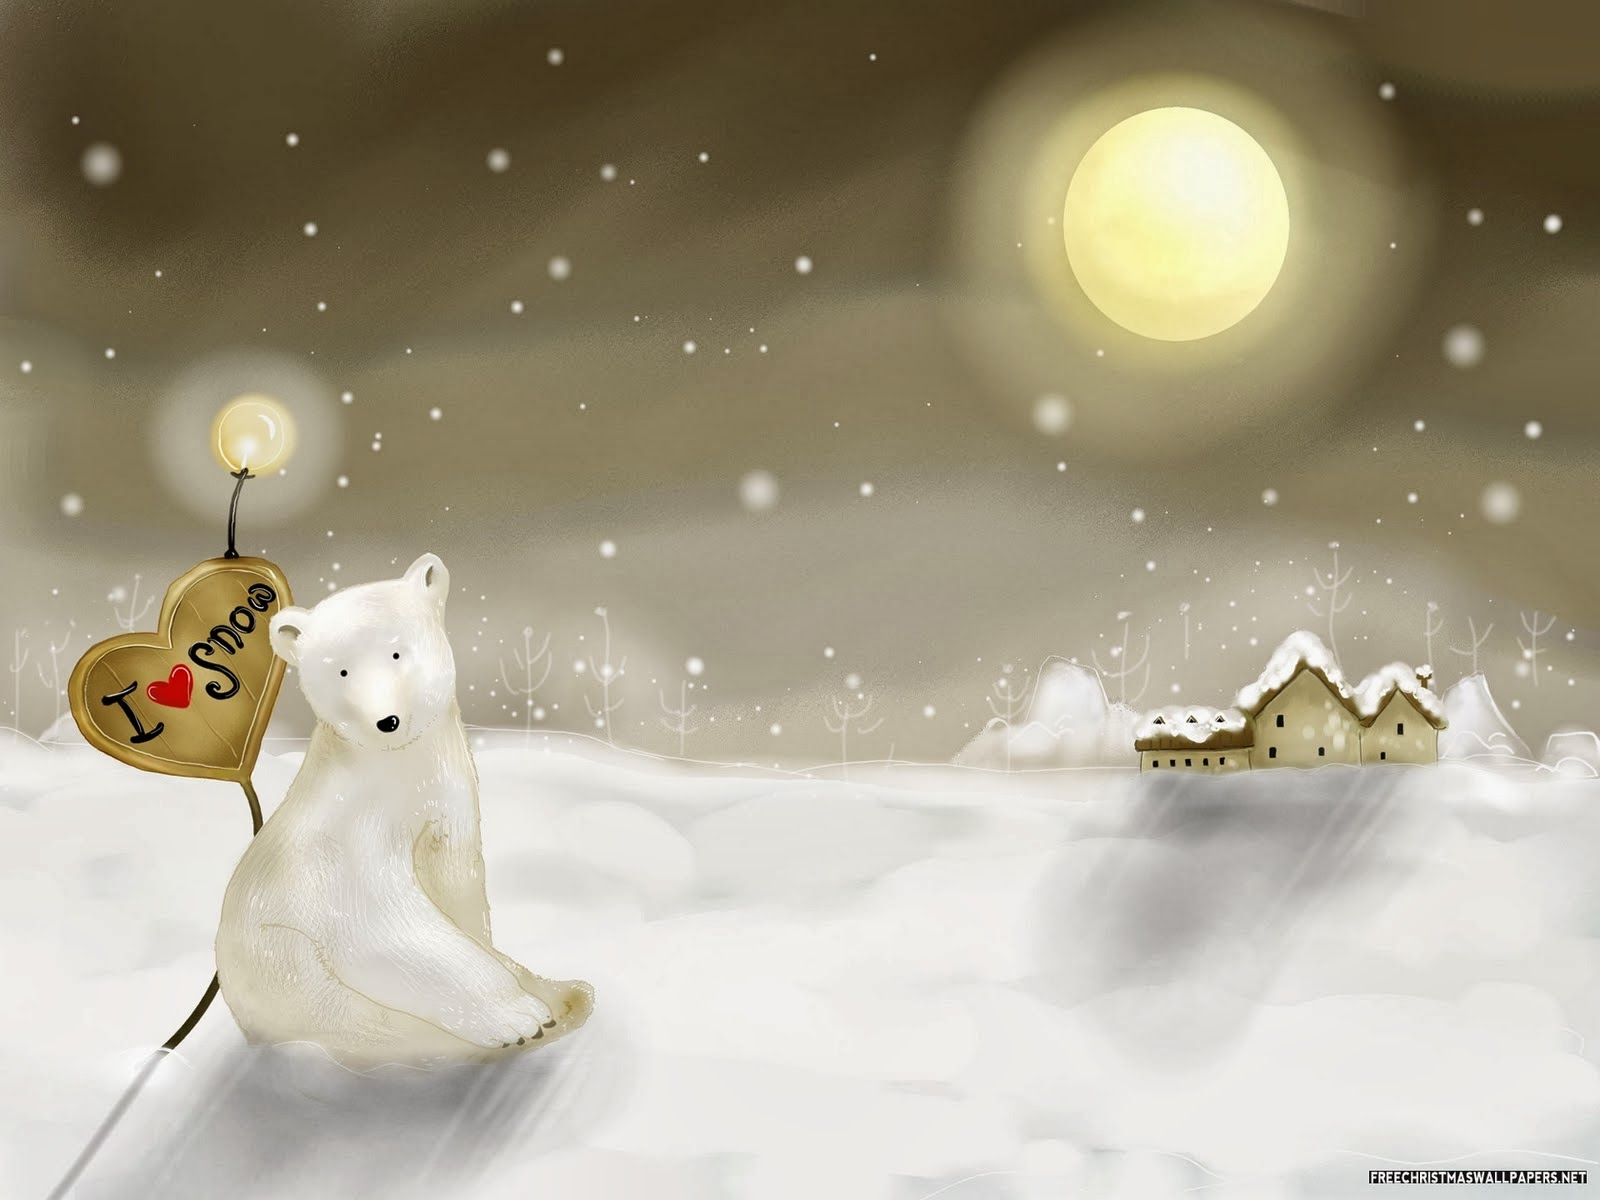 enjoy christmas everyday with christmas wallpapers | free wallpapers